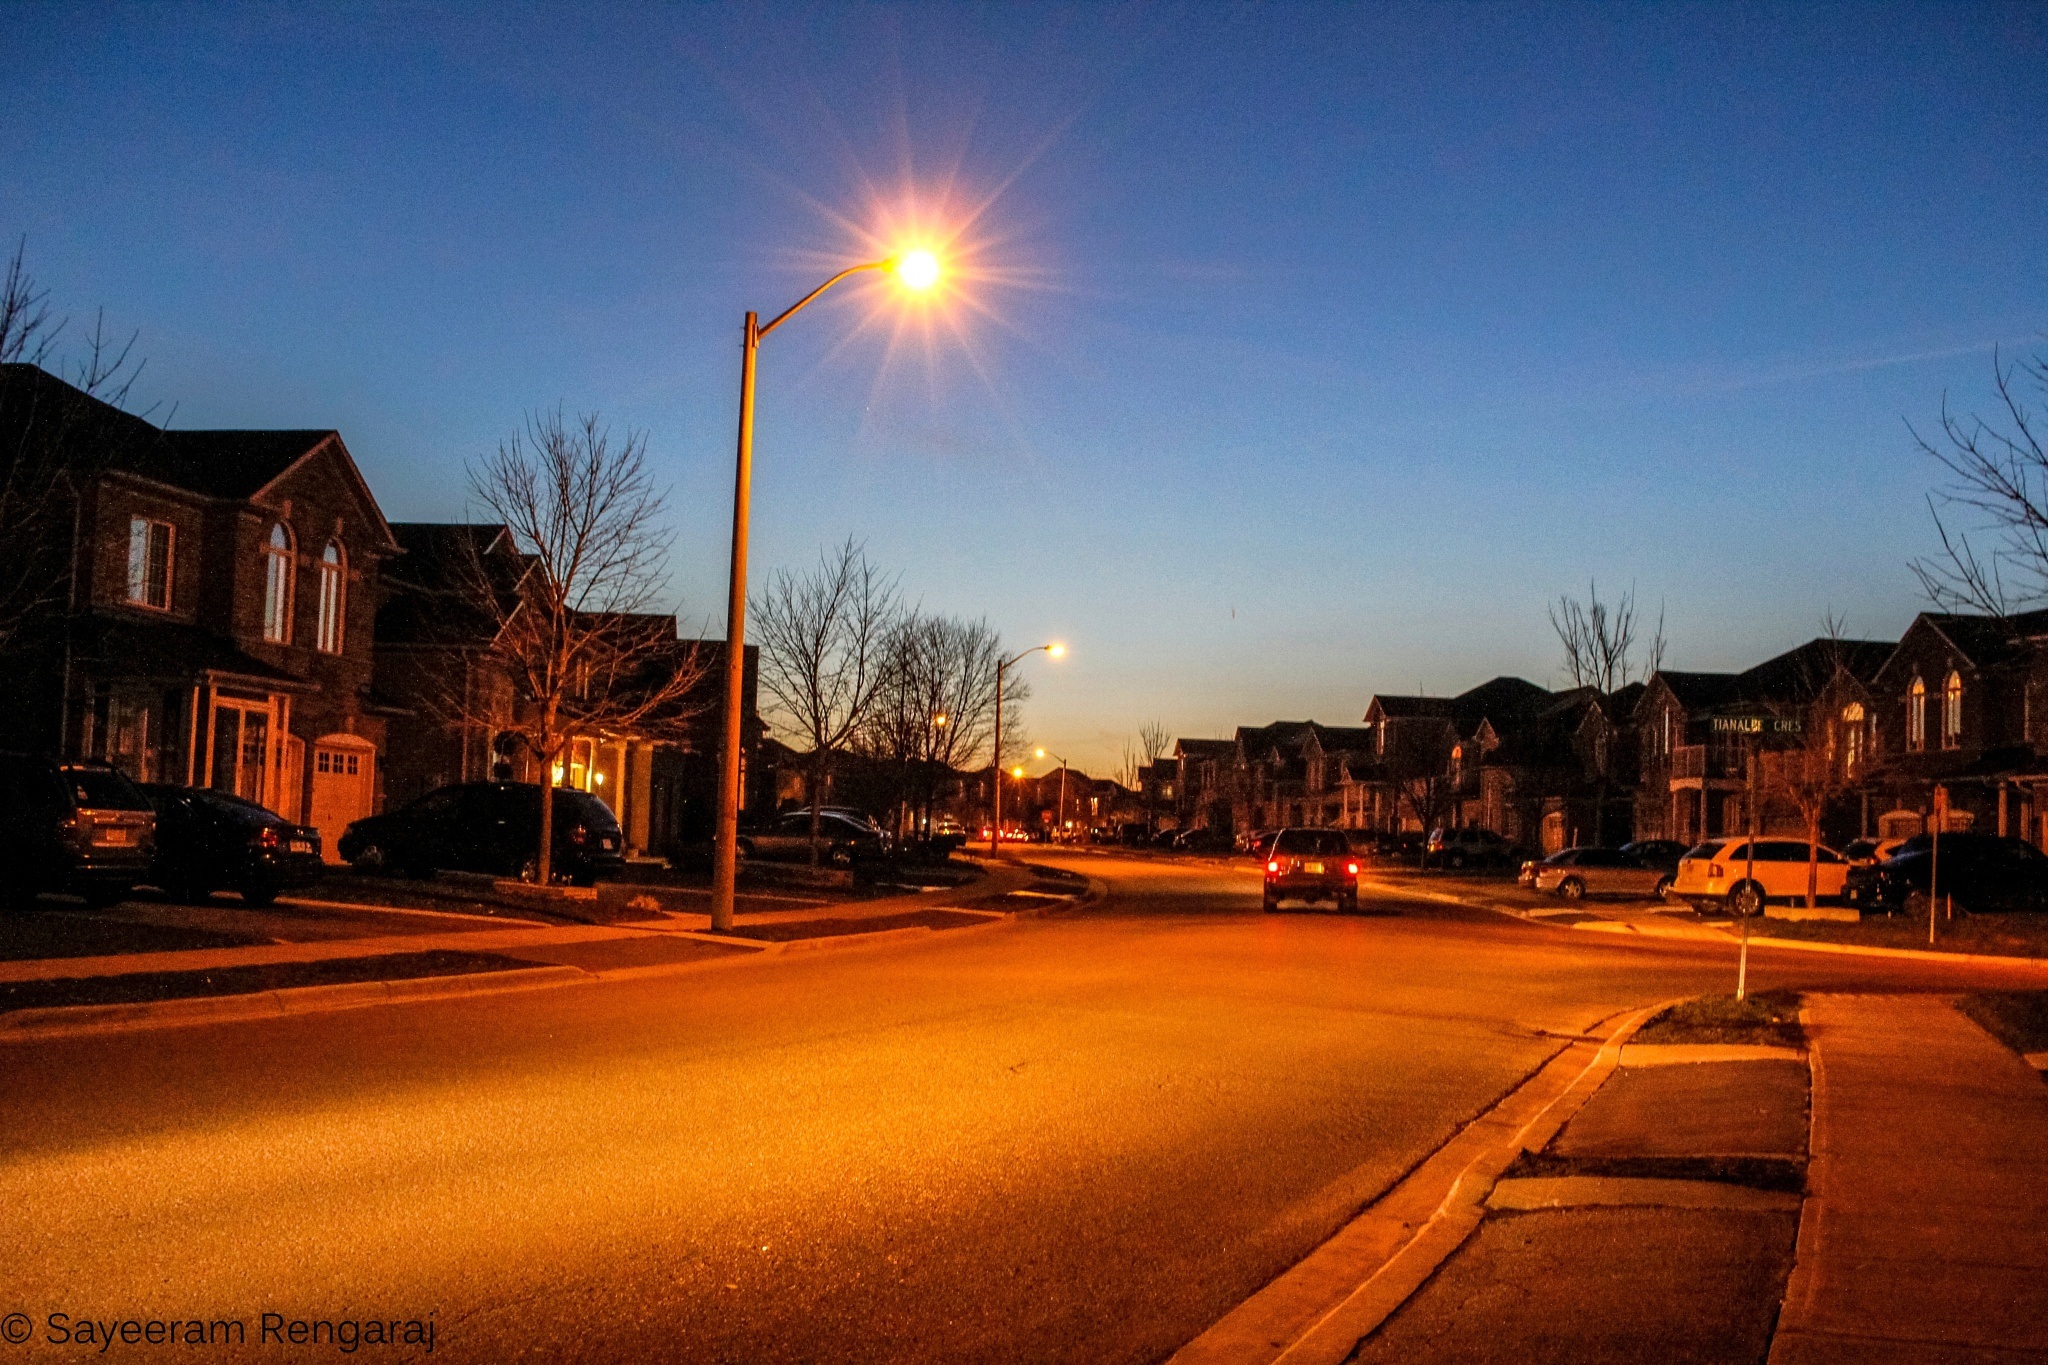 Queen Mary Drive, Brampton by Sayeeram Rengaraj